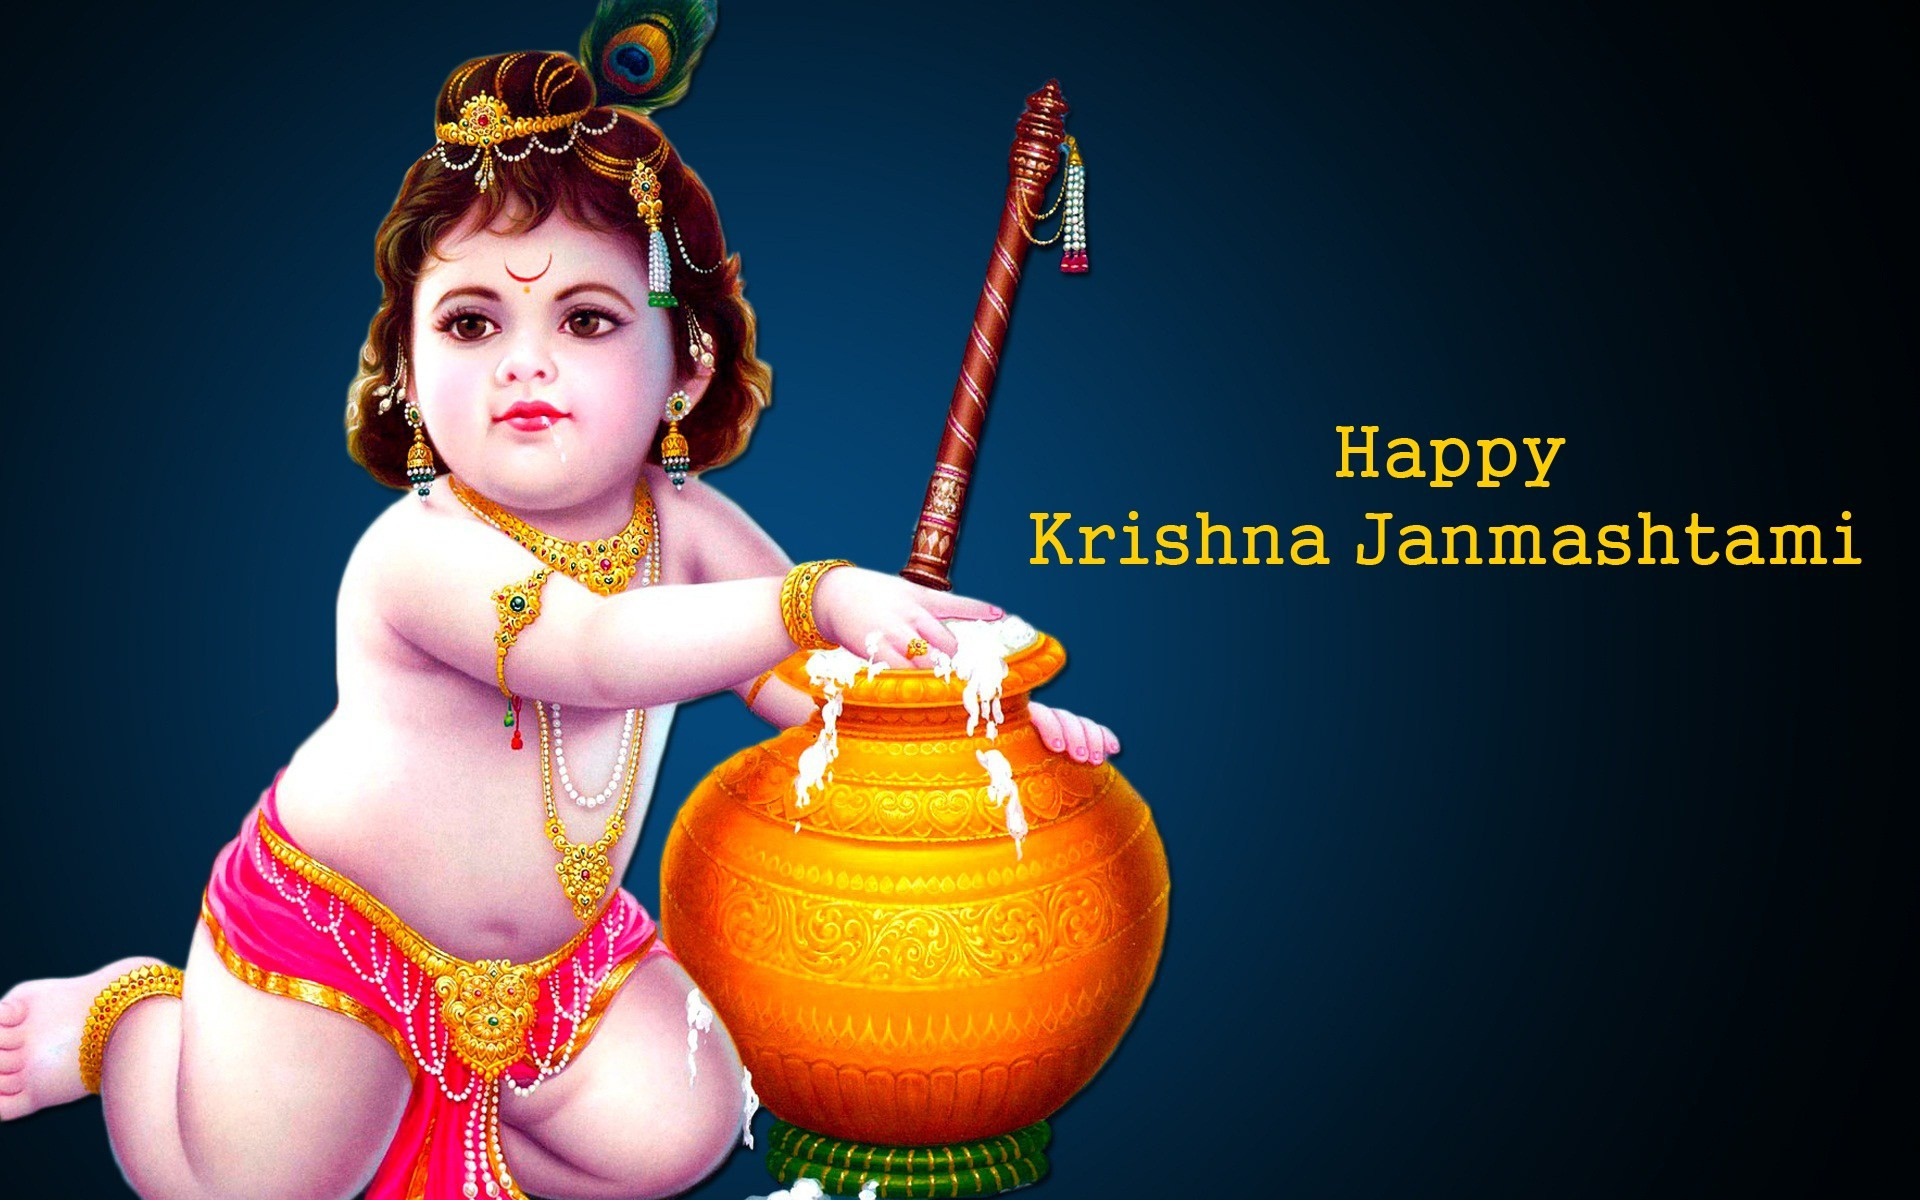 Eating Wallpapers Images - Top 20 krishna ji images wallpapers pictures pics photos latest collection hd wallpapers